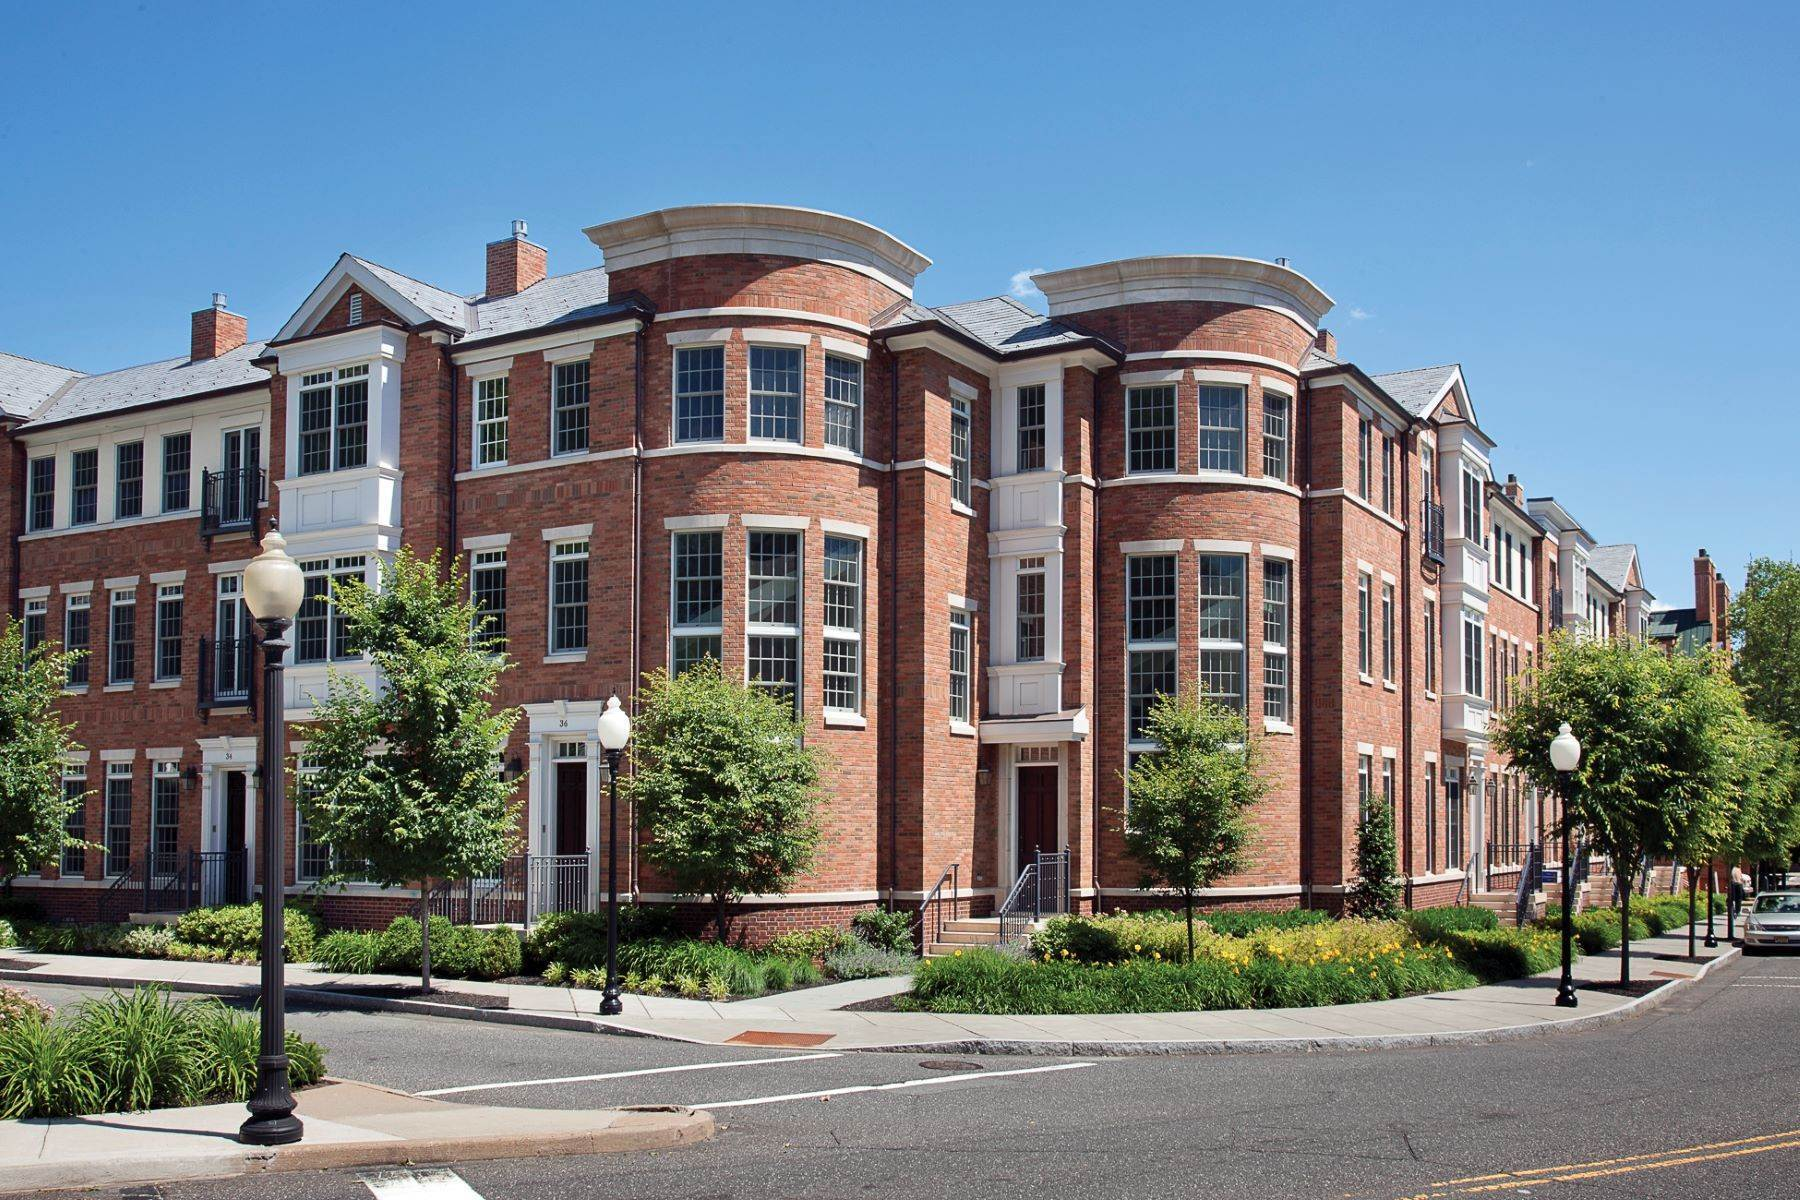 11. townhouses at Luxury Townhome Living at its Finest 20 Paul Robeson Place, Princeton, New Jersey 08542 United States